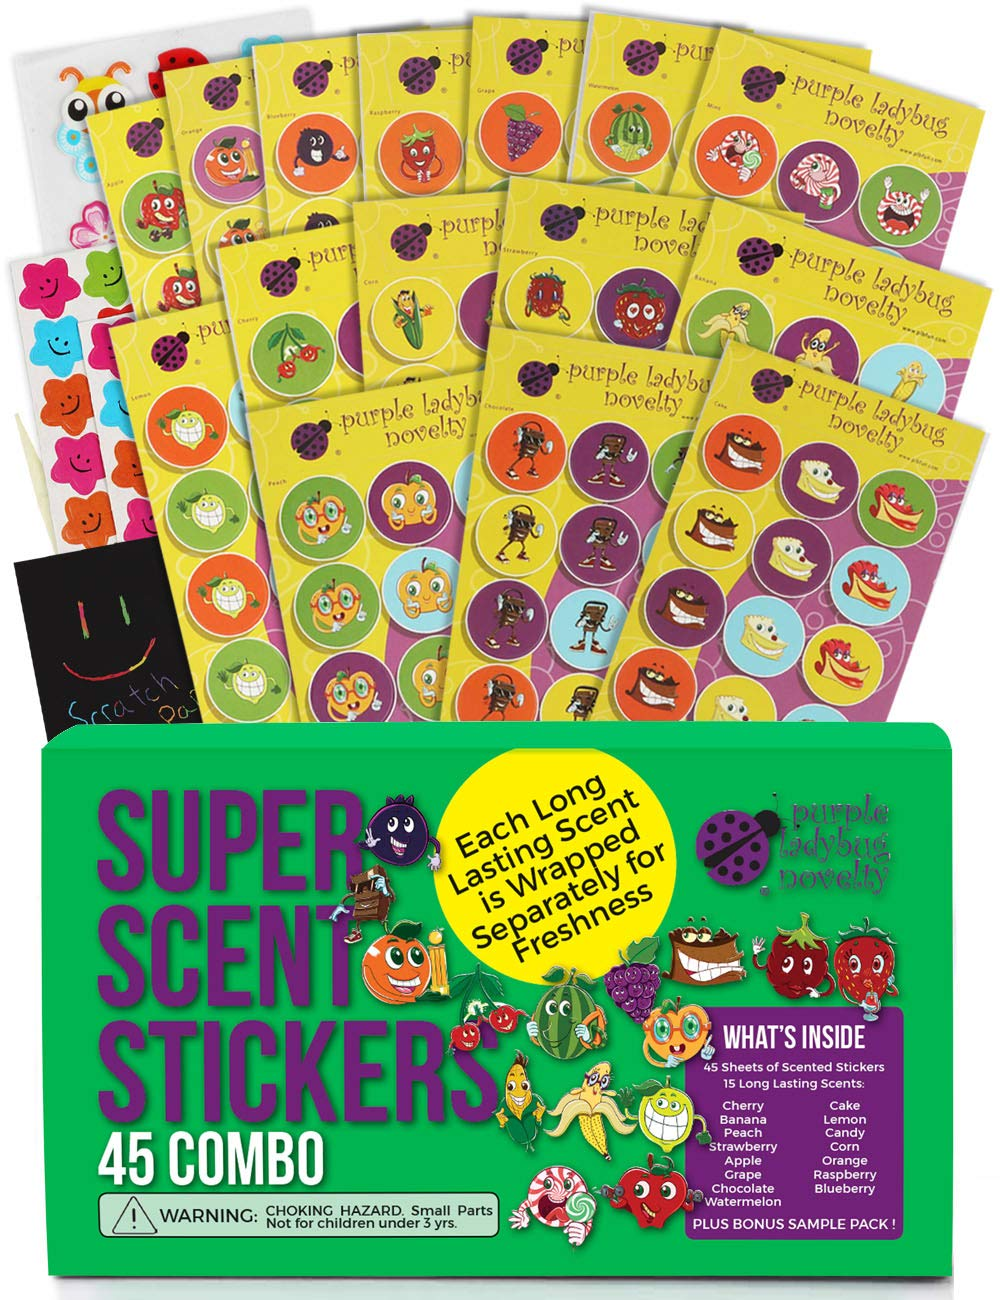 Purple Ladybug 45 Sheets of Scratch and Sniff Stickers for Kids & Teachers with 15 Unique Scratch N Sniff Intense Smells! 675 Motivational Smelly Stickers & Super Scented Reward Stickers for Students!